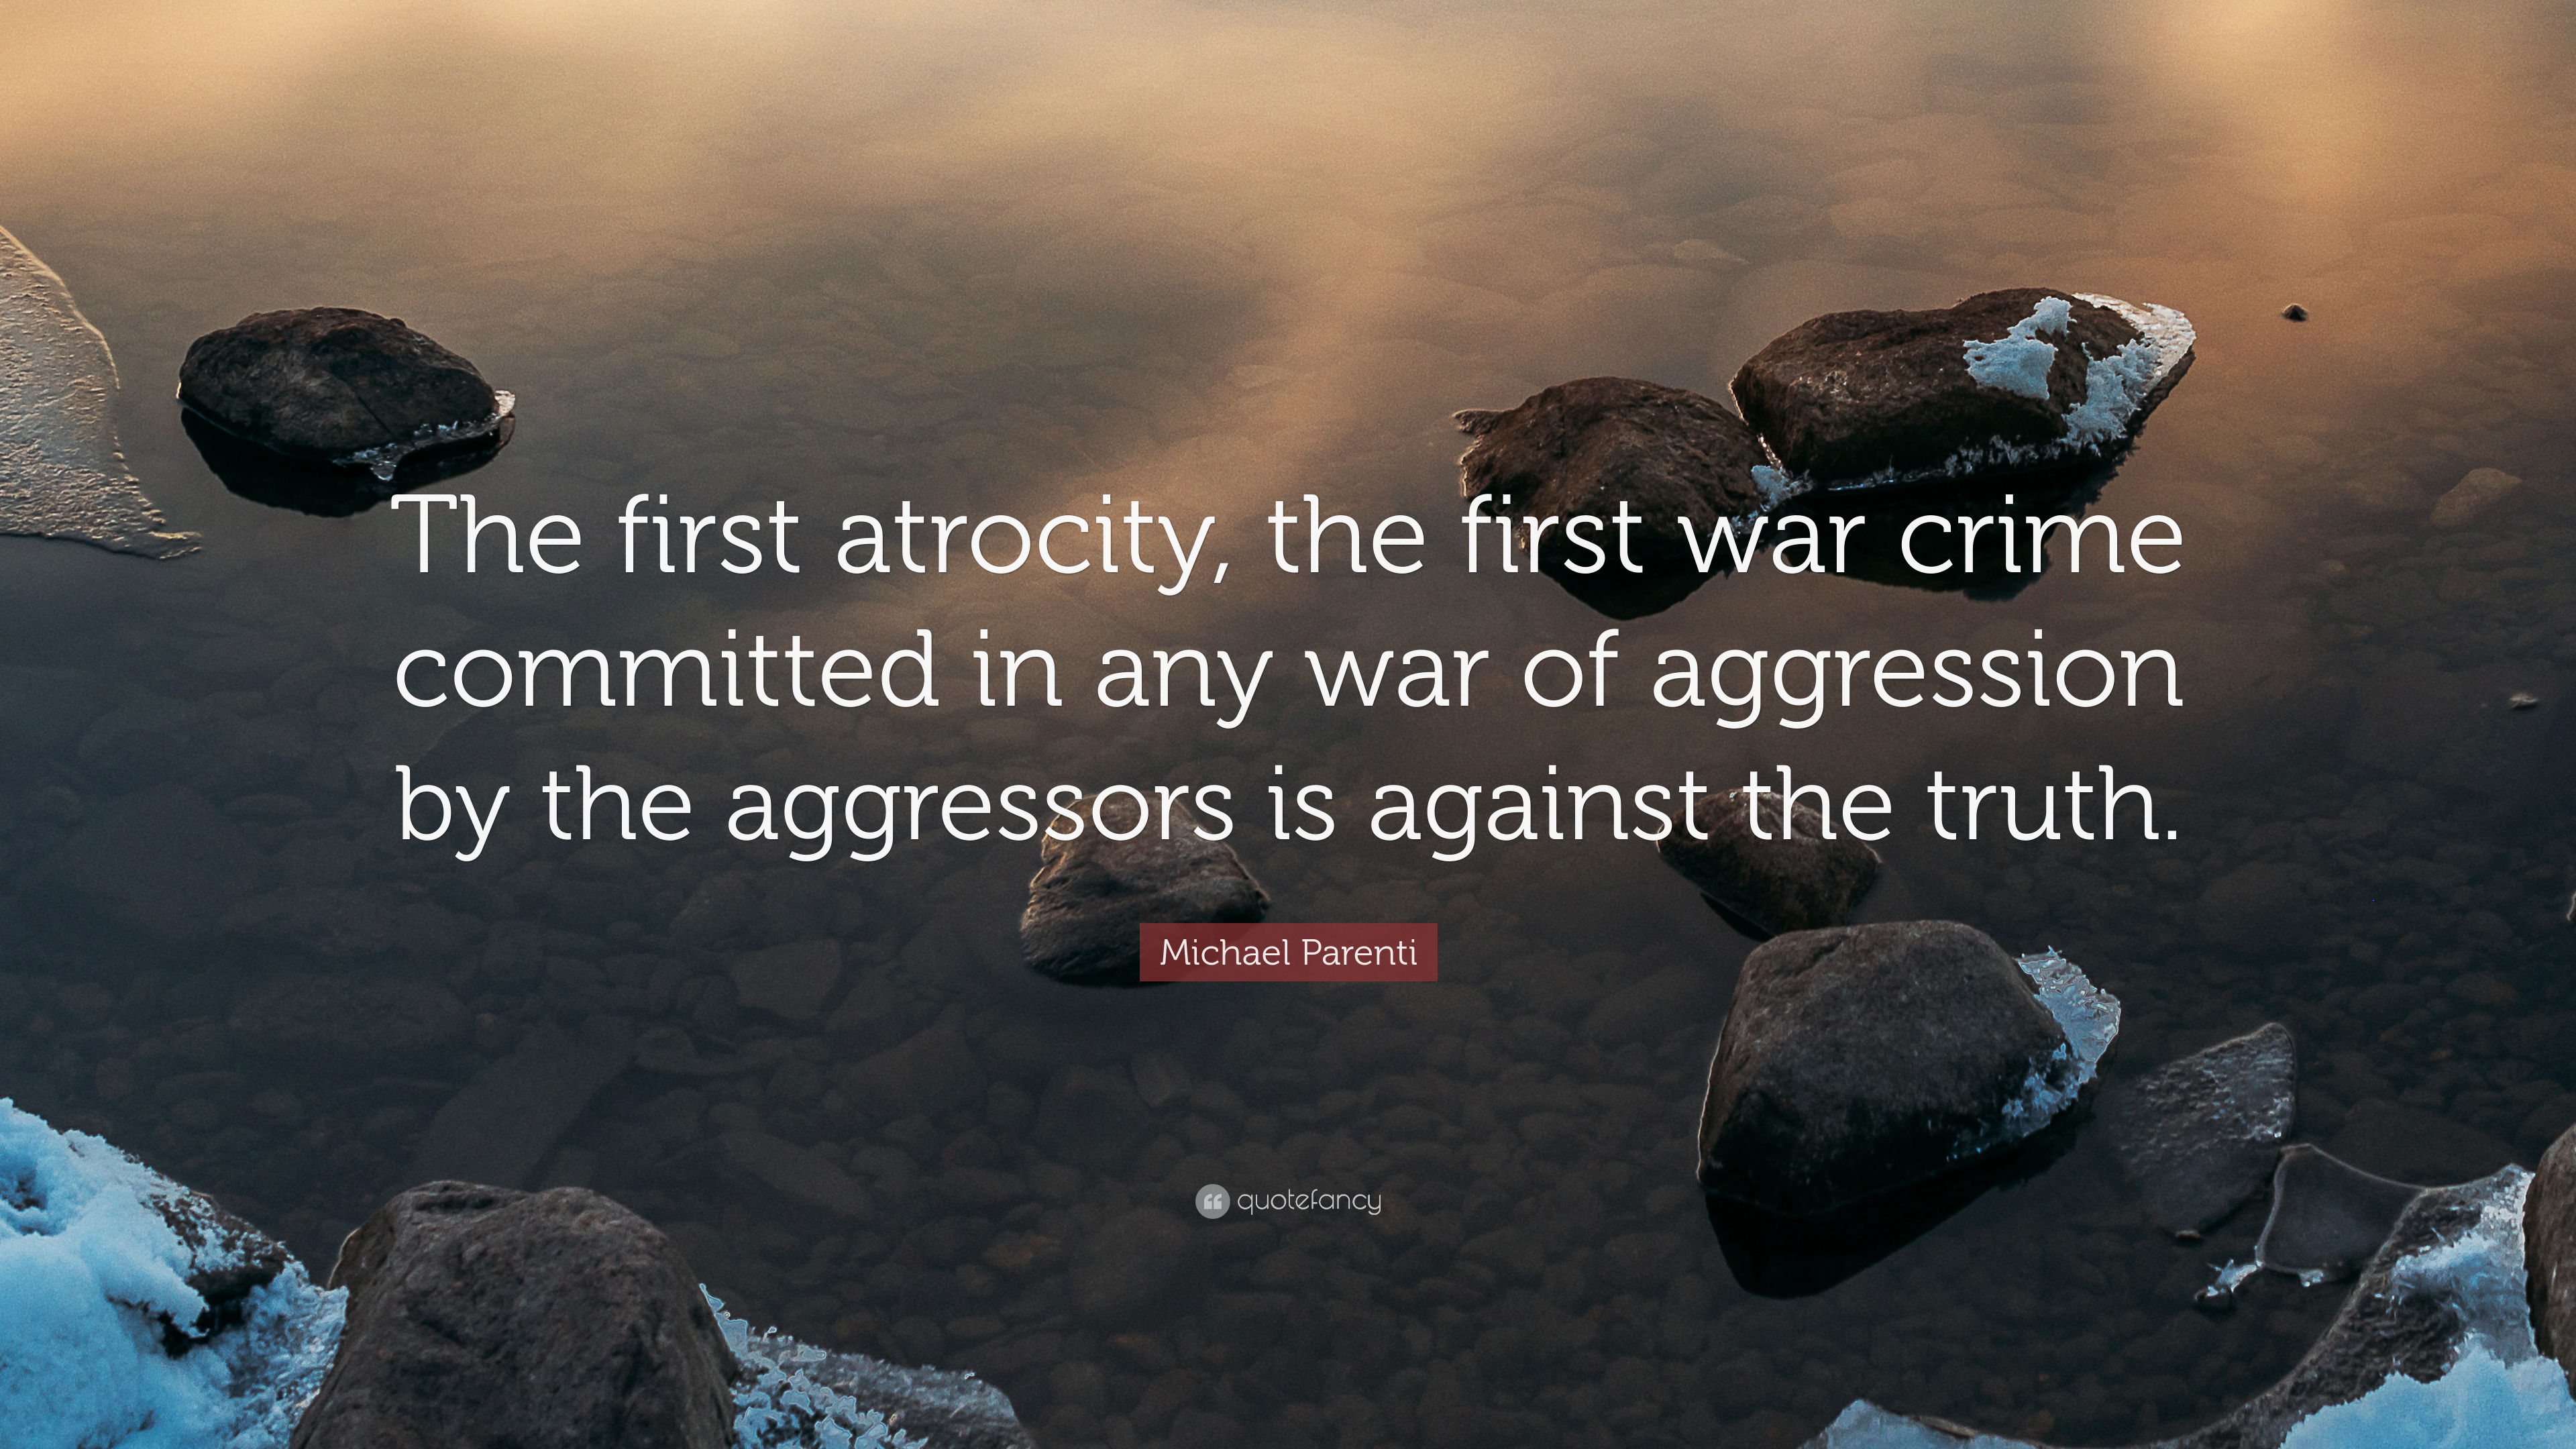 in any conflict truth is the In any conflict between two men (or two groups) who hold the same basic principles, it is the more consistent one who wins in any collaboration between two men (or two groups) who hold different basic principles, it is the more evil or irrational one who wins.